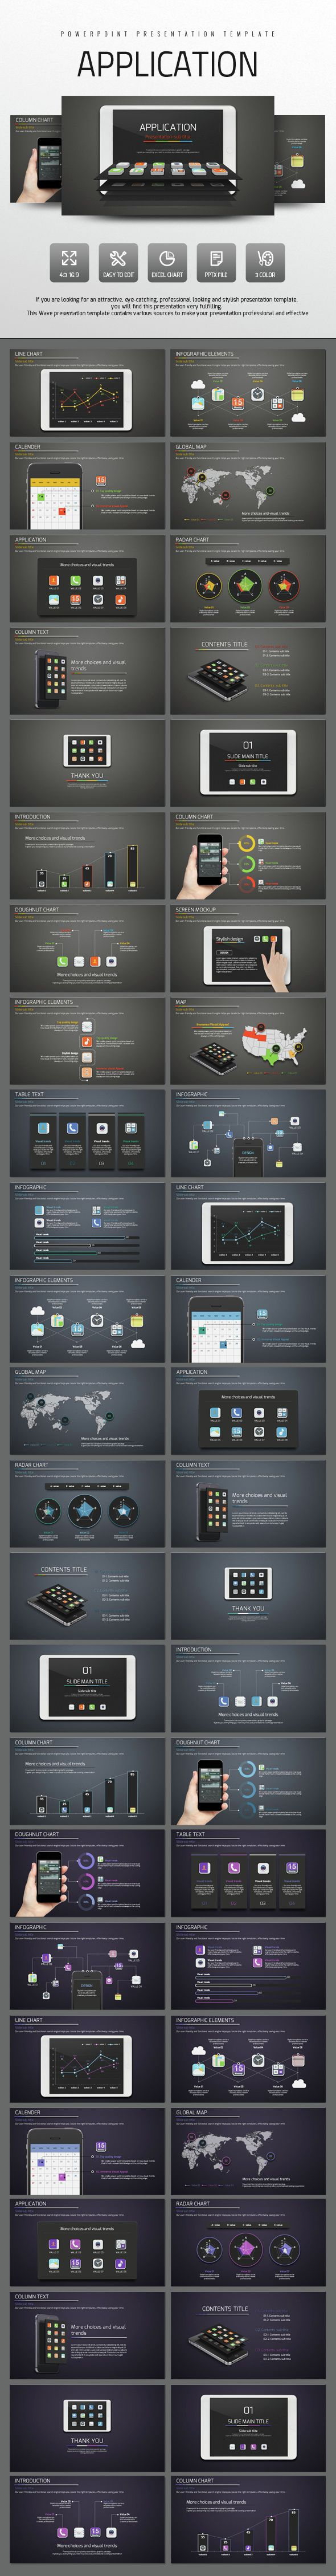 Application - #PowerPoint Templates #Presentation Templates Download here: https://graphicriver.net/item/application/14789979?ref=alena994